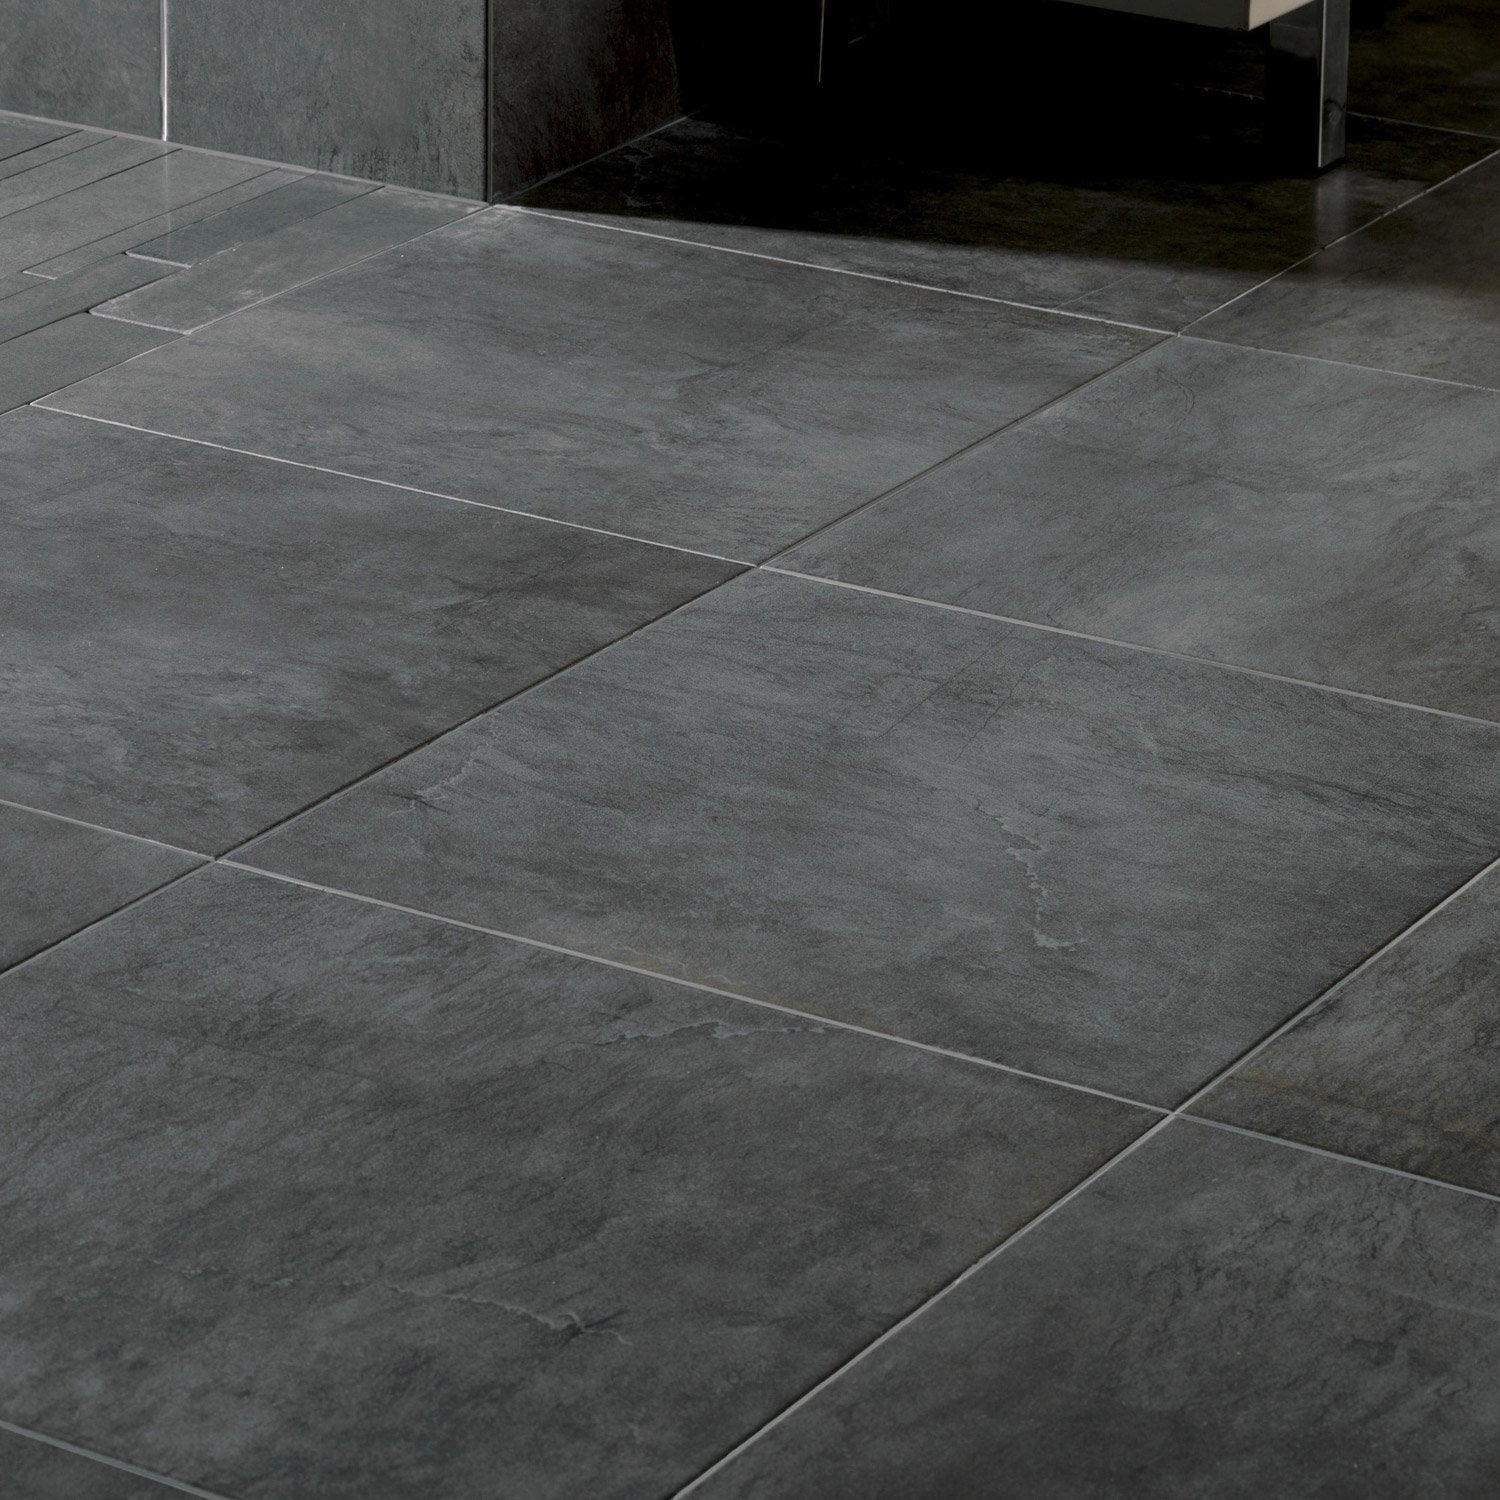 Carrelage gris anthracite salissant 28 images 1000 id for Carrelage salle de bain gris anthracite